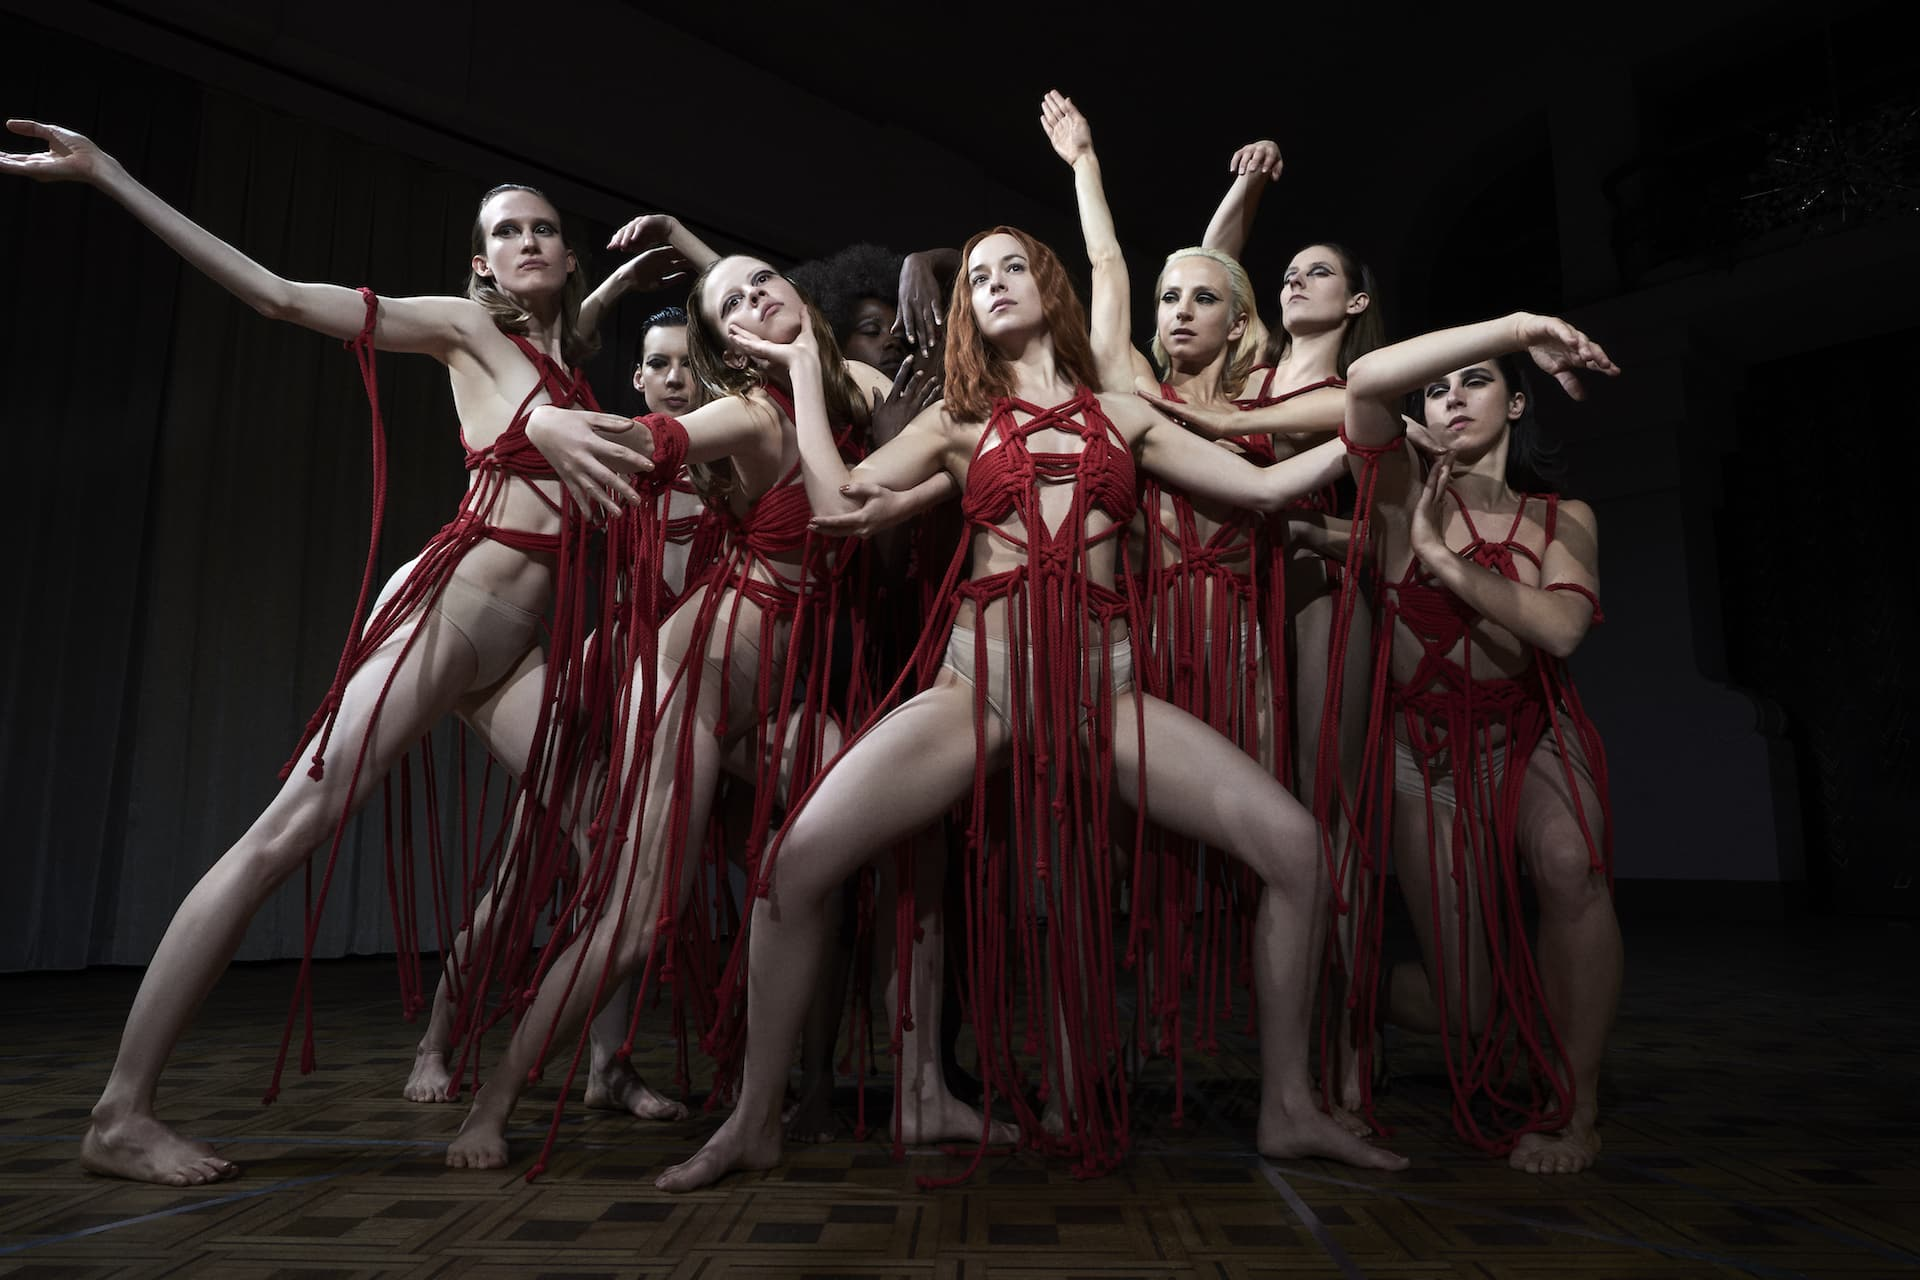 Suspiria Cinematographe.it